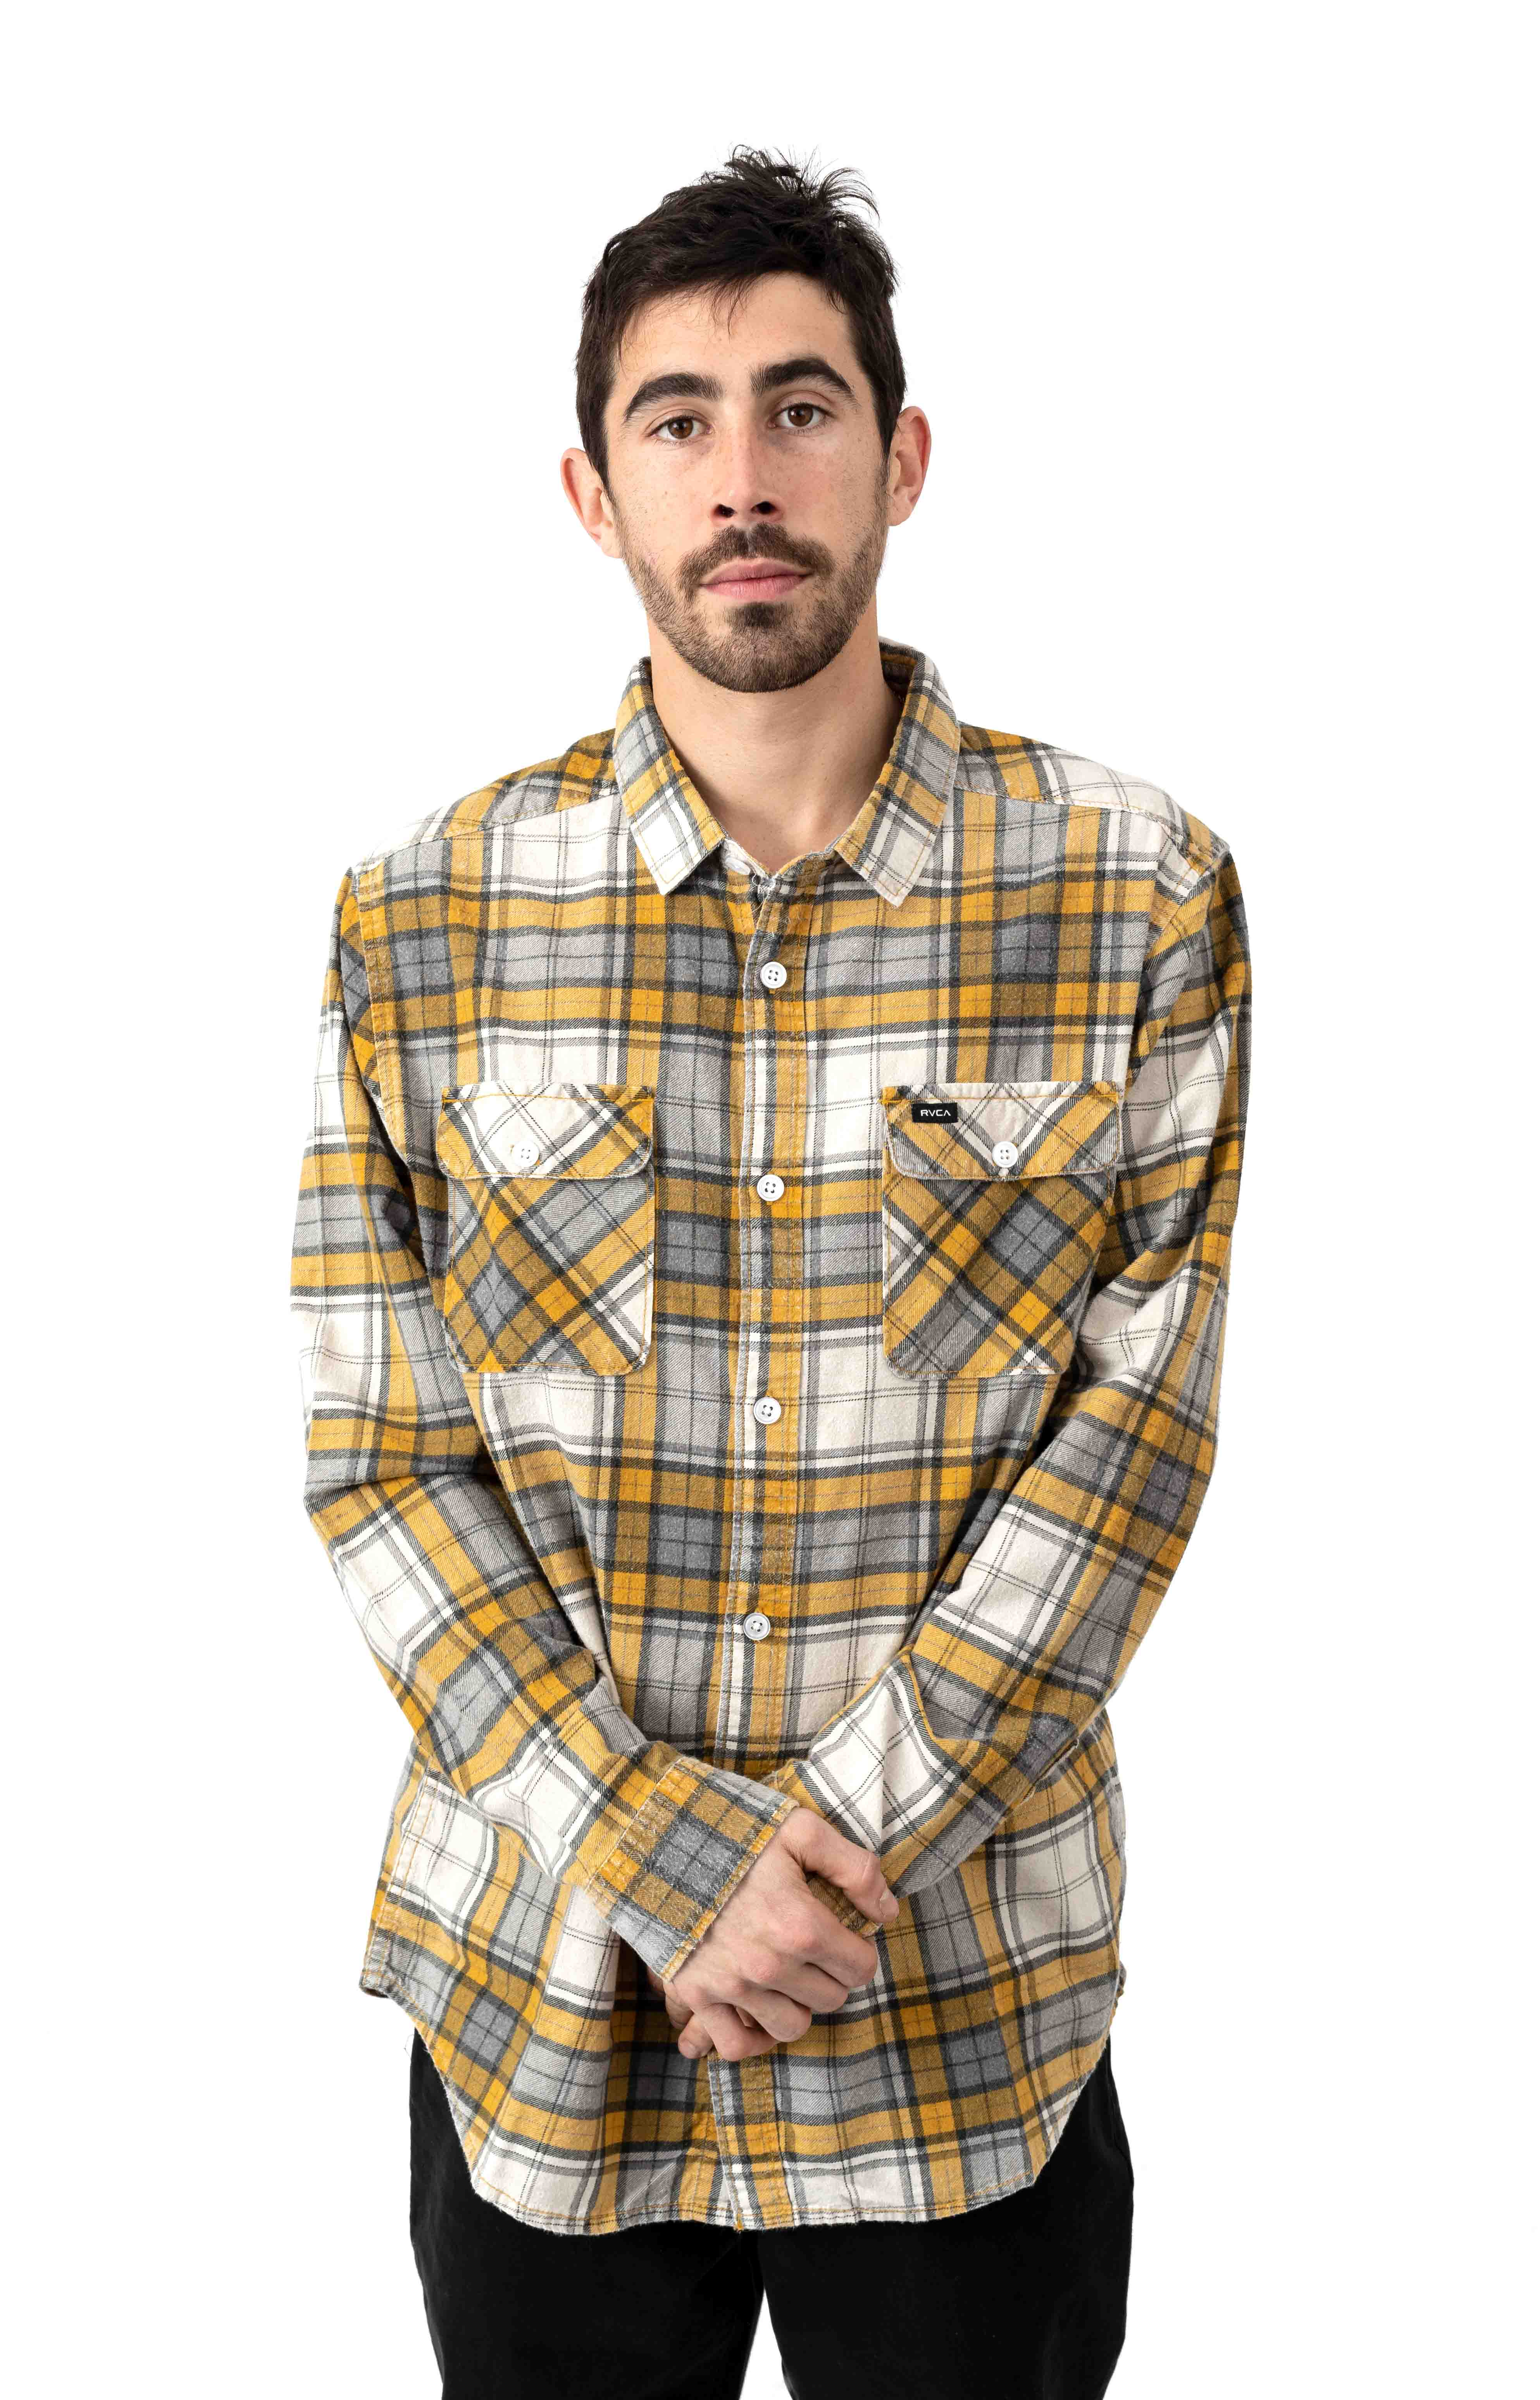 Panhandle Flannel Button-Up Shirt - Golden Yellow  2